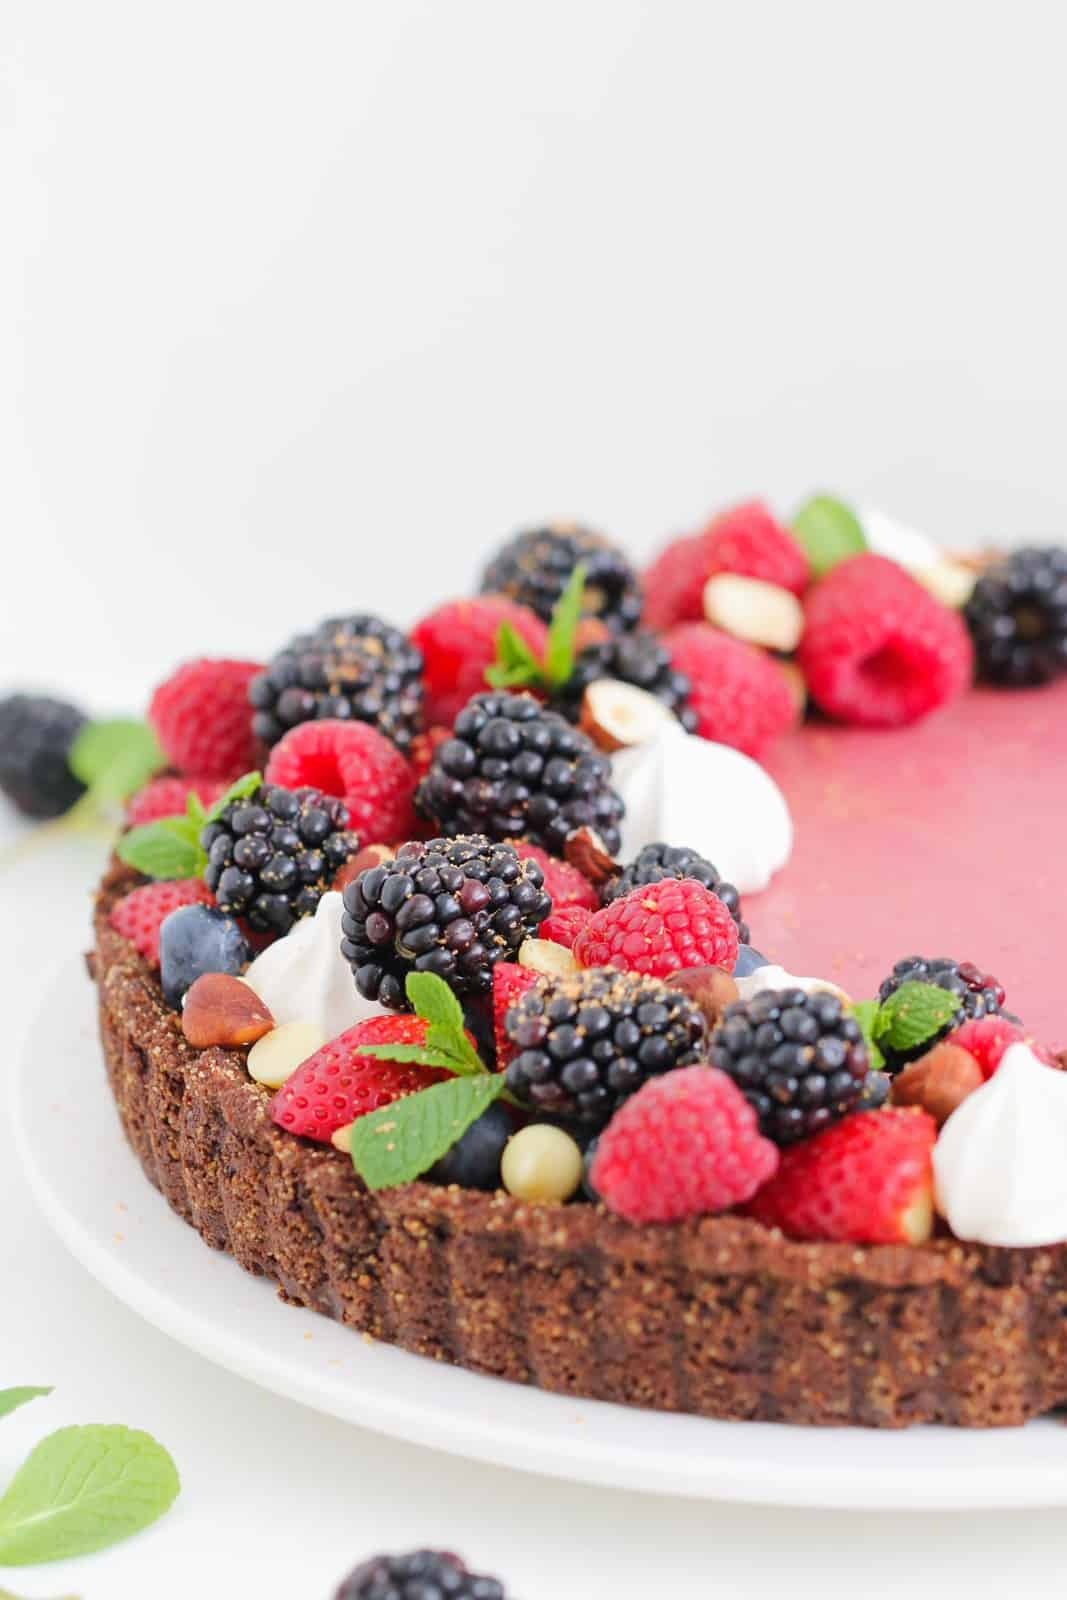 A berry tart with a chocolate base covered with fresh berries and mint leaves and meringues.